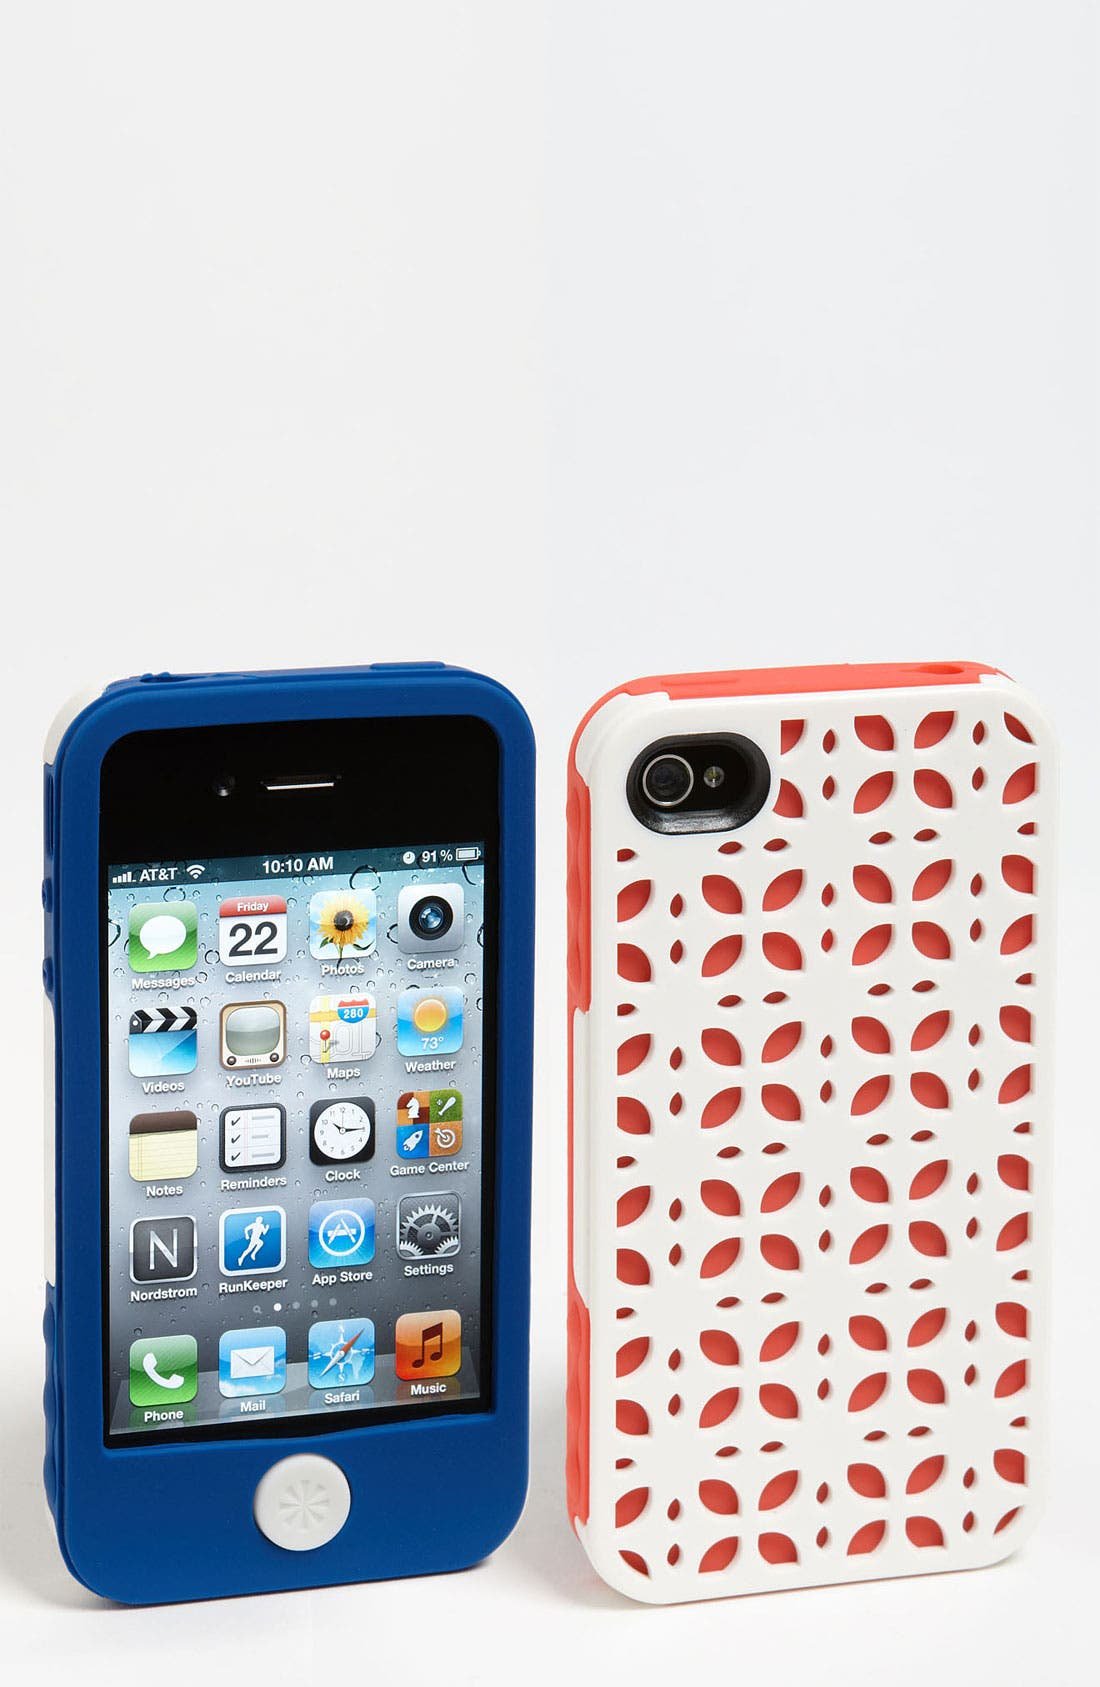 Alternate Image 1 Selected - Tech Candy 'New York' iPhone 4 Silicone Case